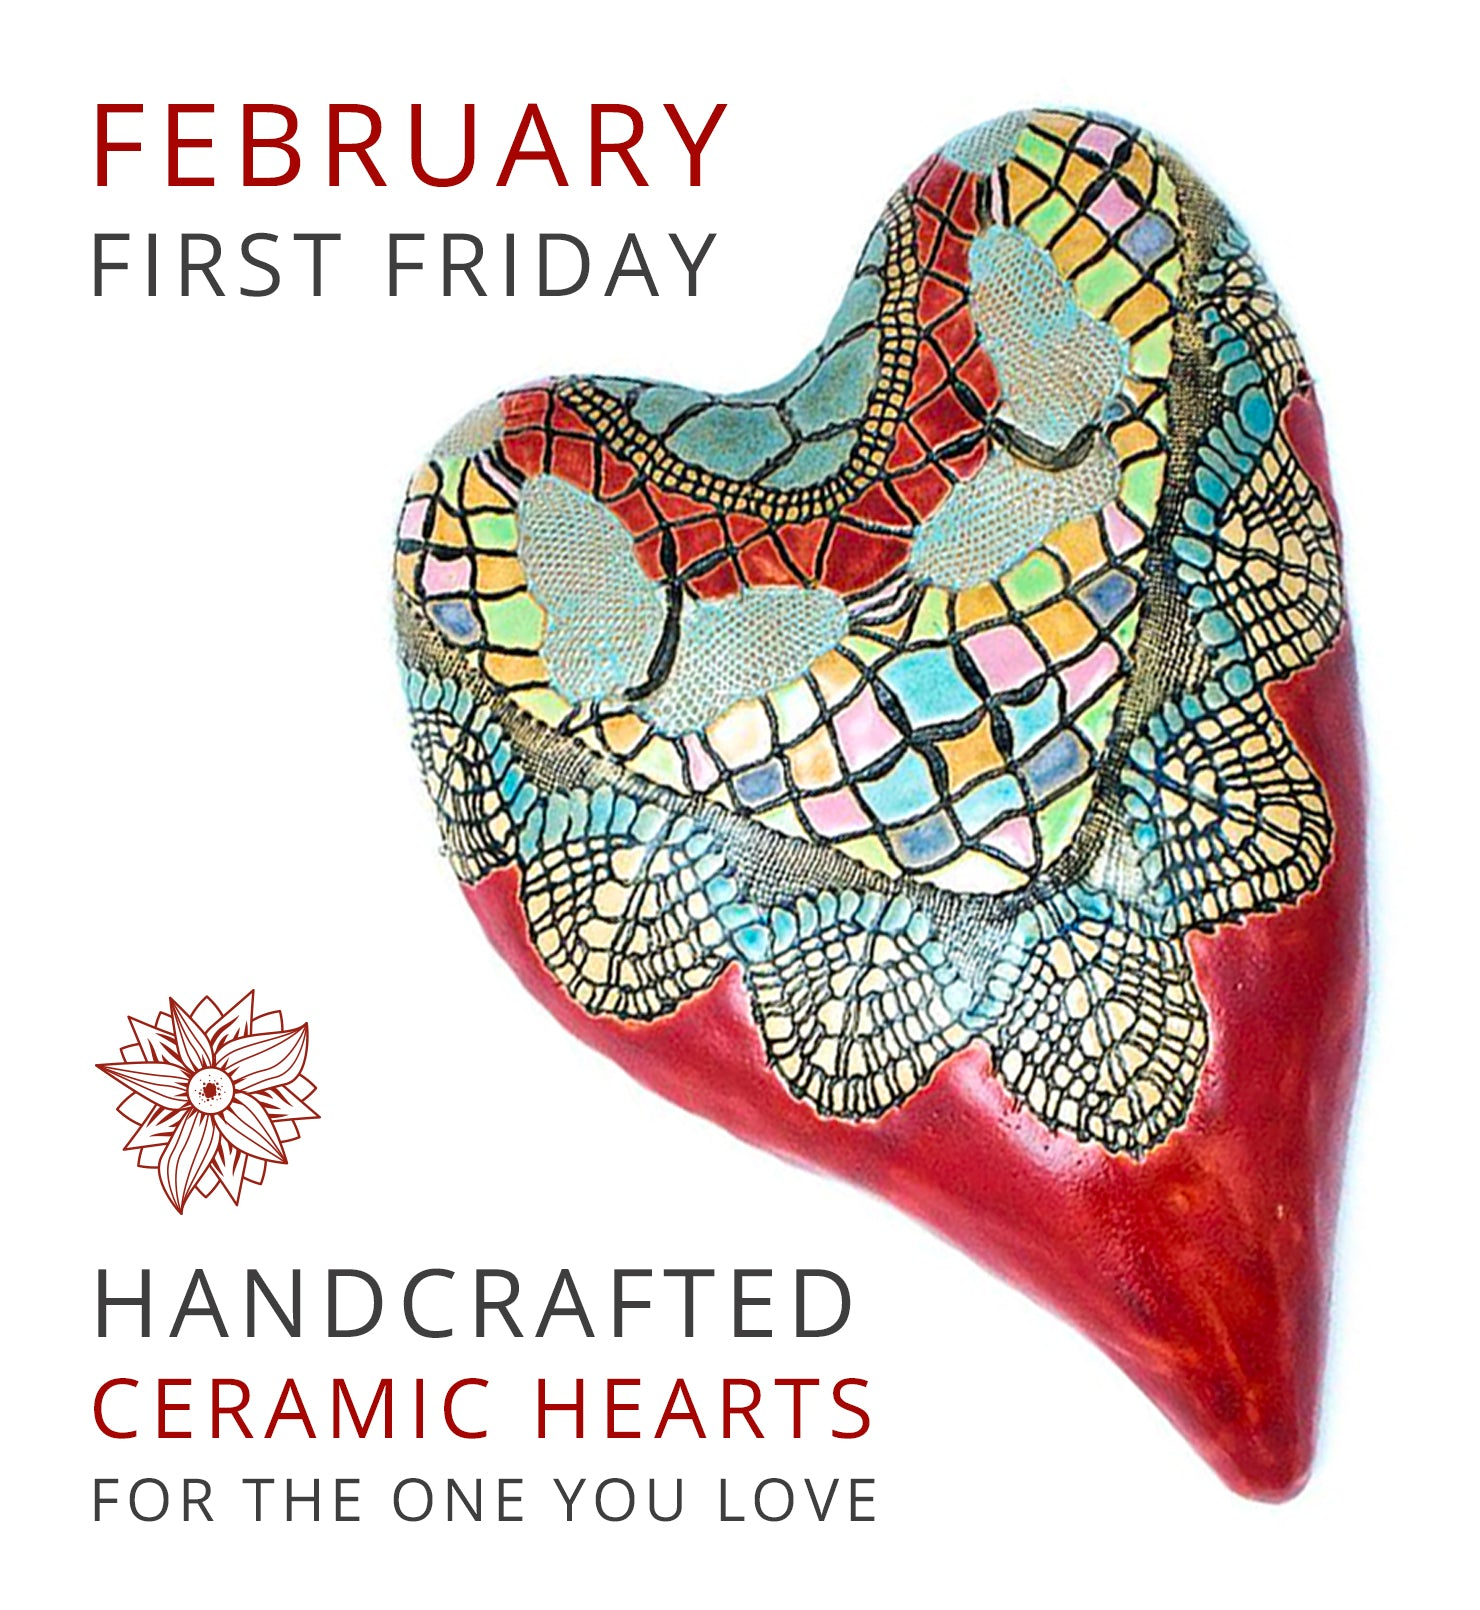 Celebrate Love on February First Friday